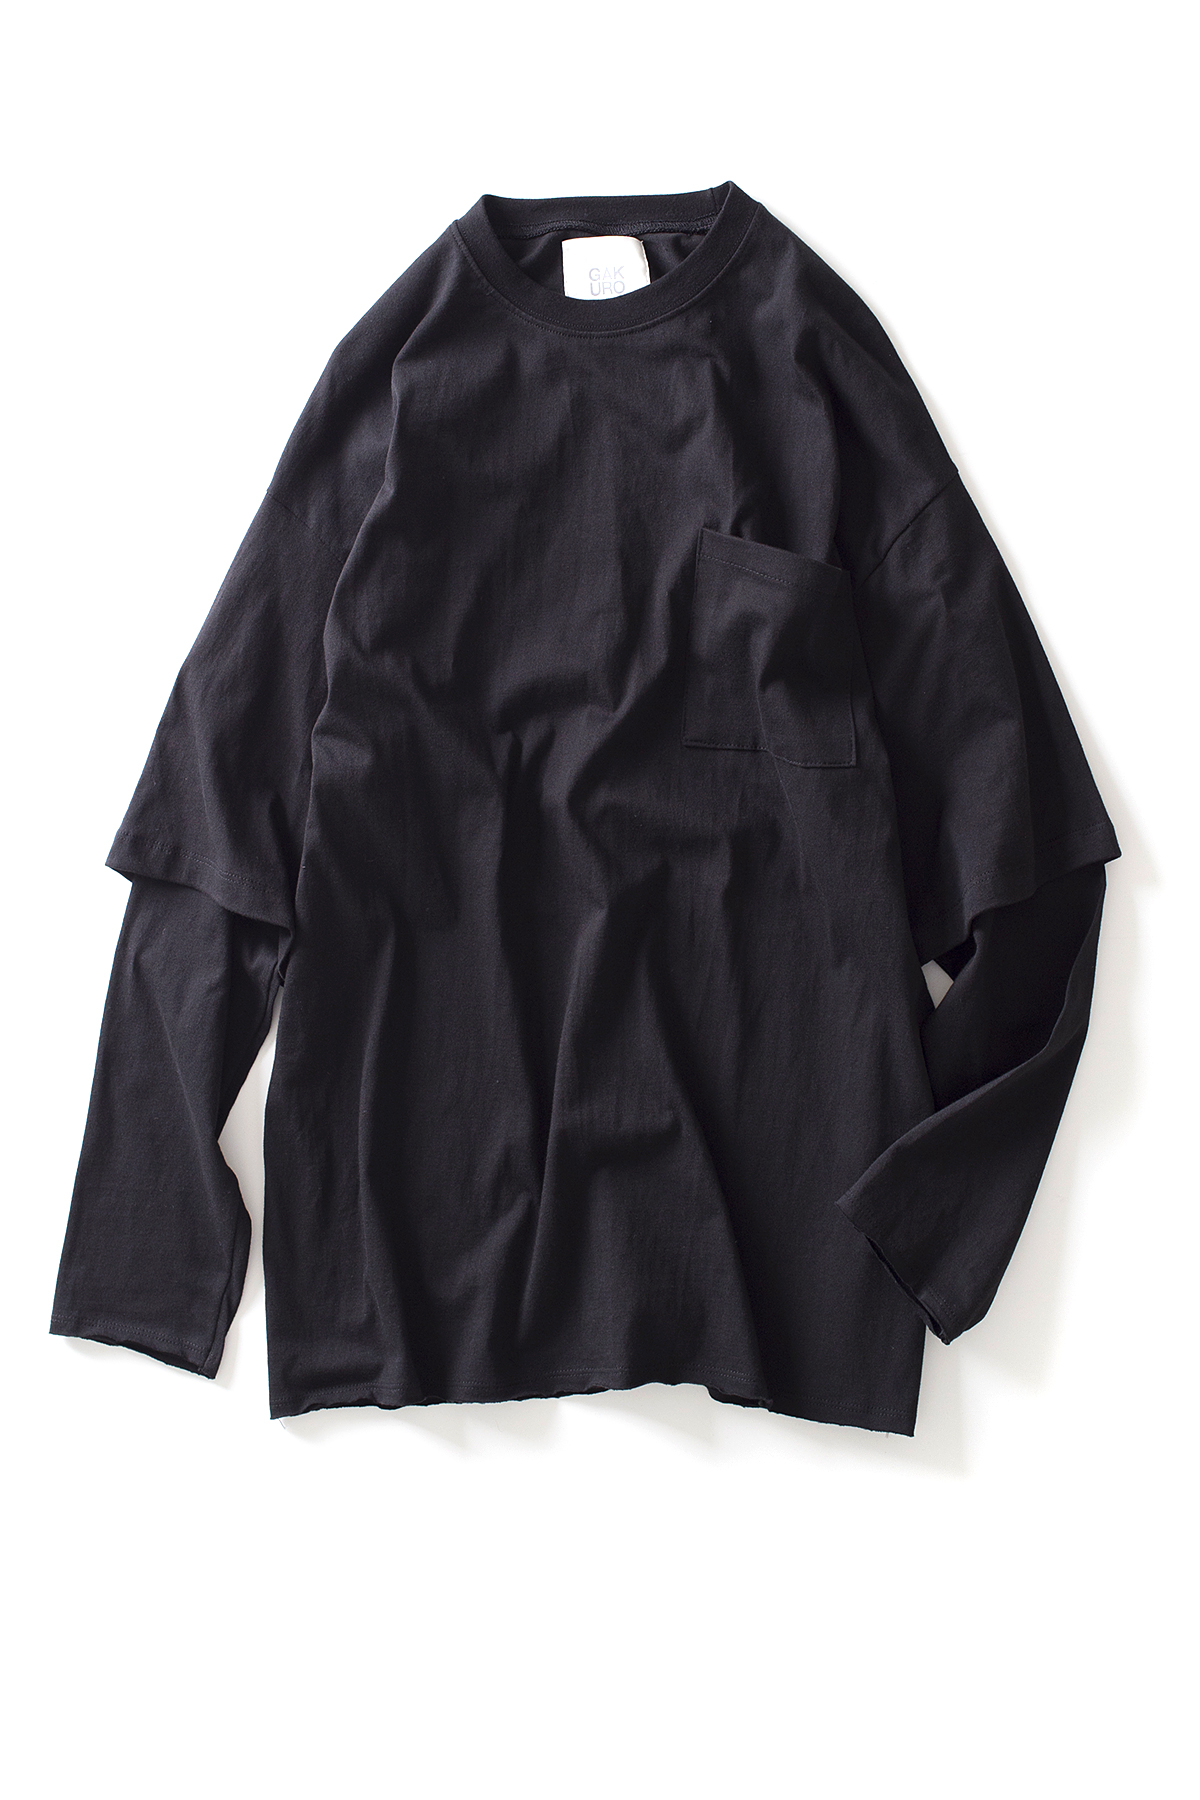 GAKURO : Layered Sleeve T-Shirt (Black)